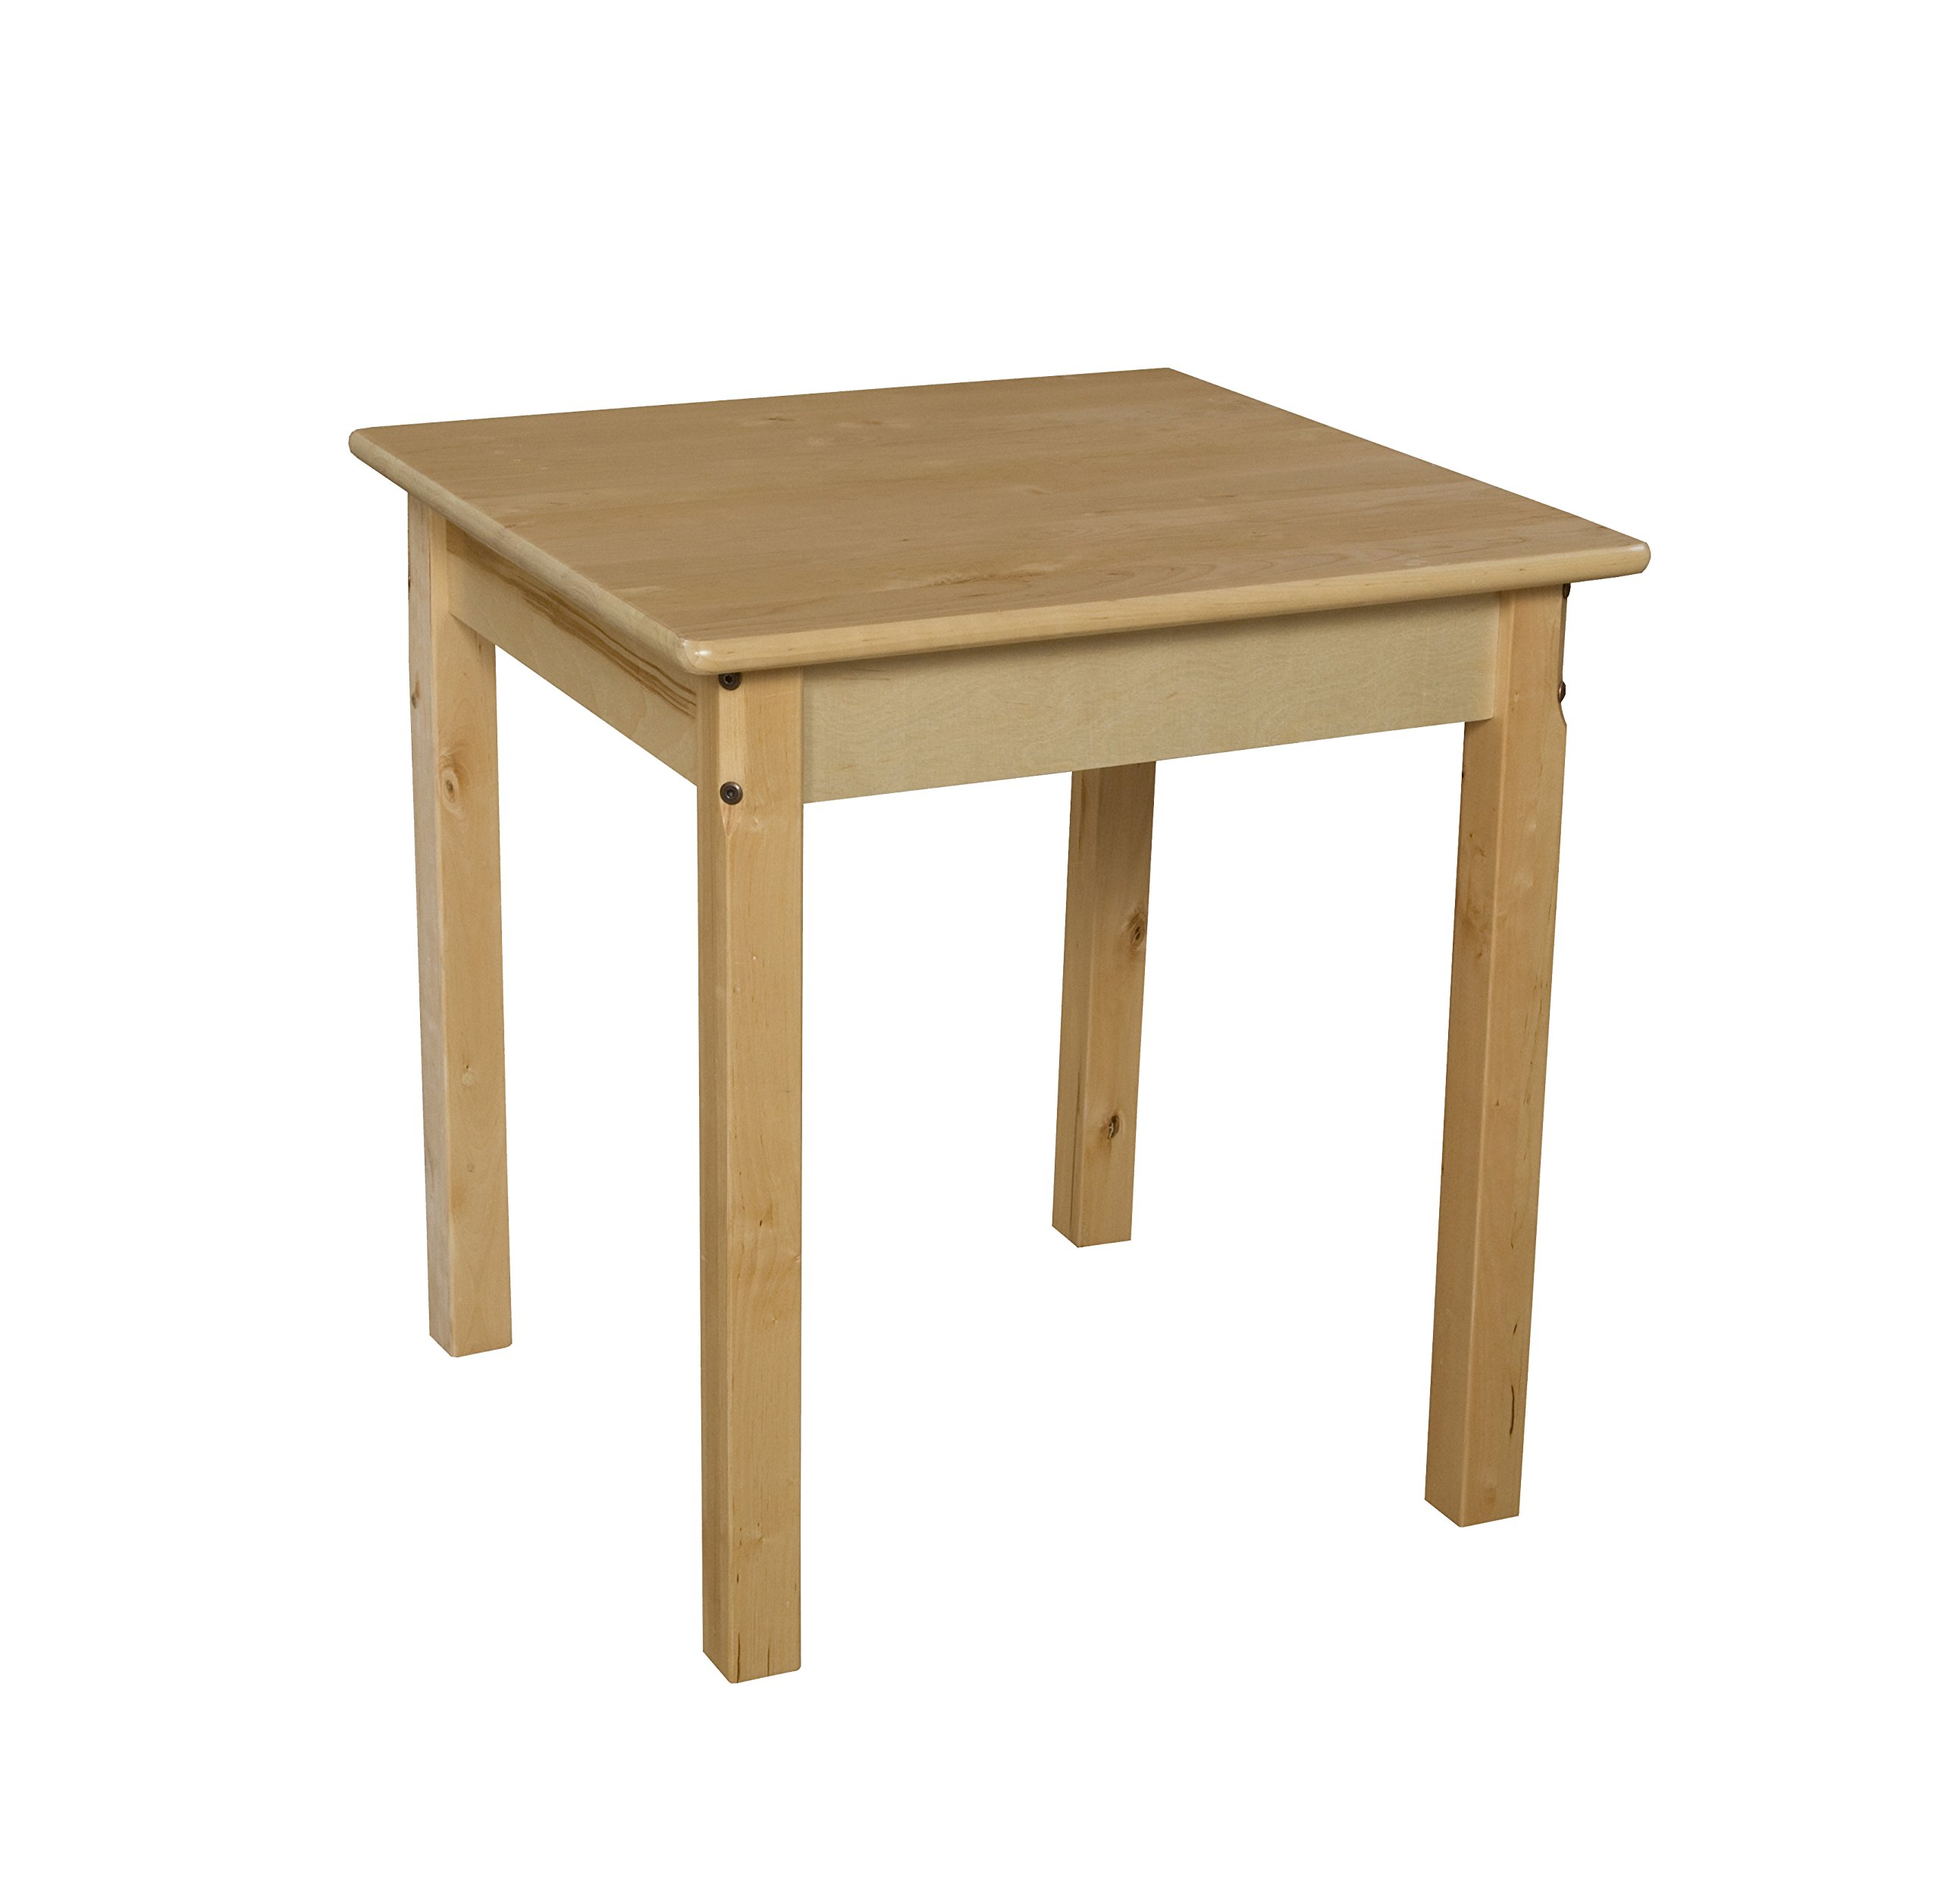 Wood Designs WD82424 Child's Table, 24'' Square with 24'' Legs